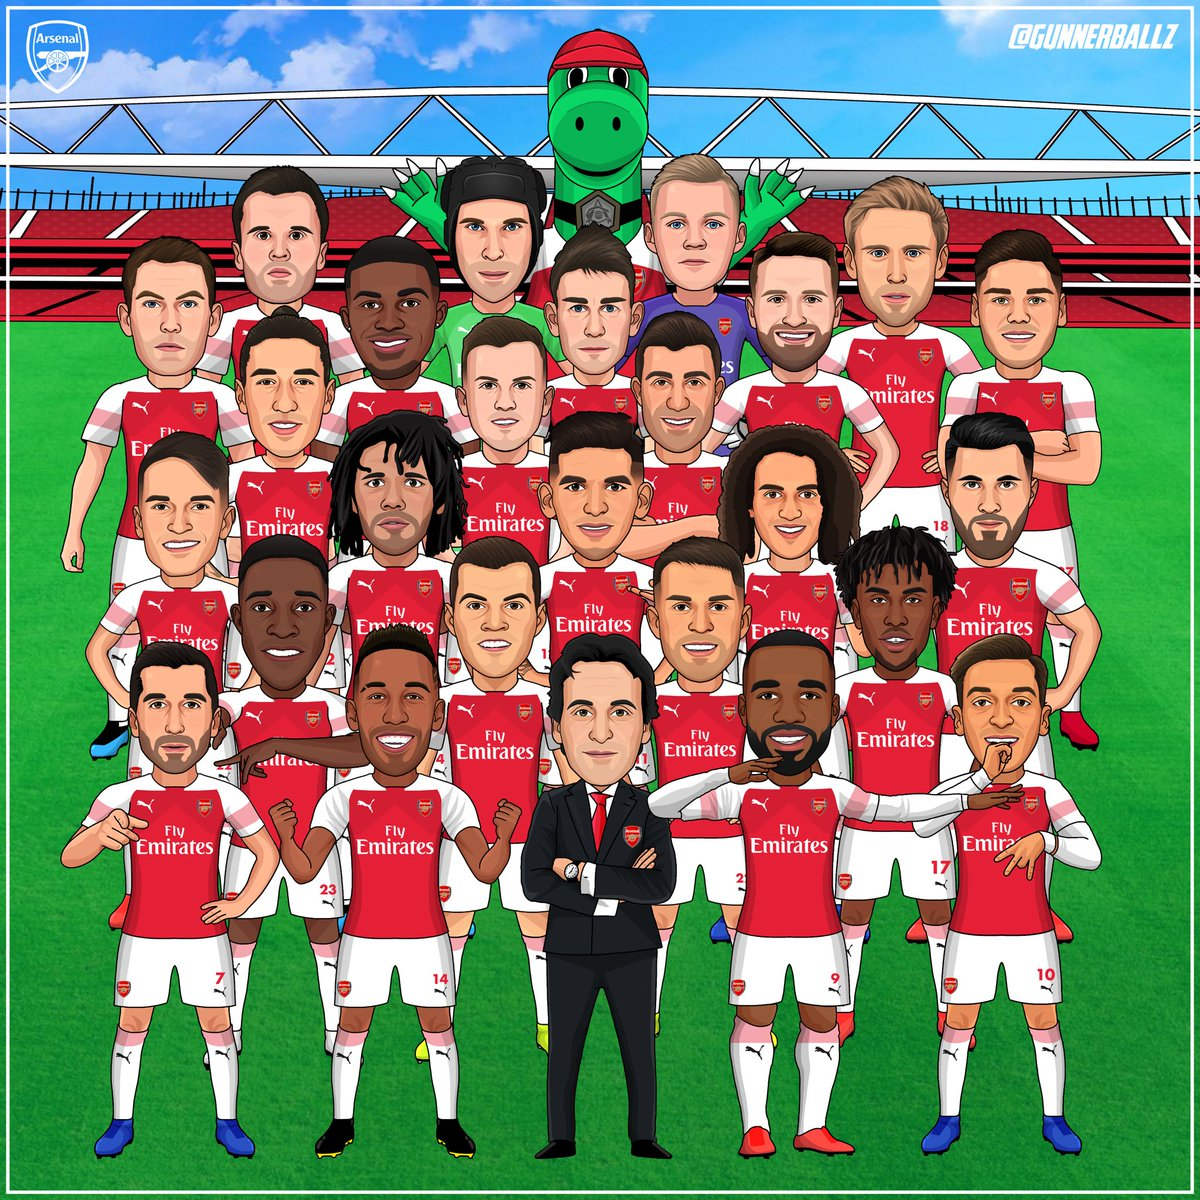 We Are The Arsenal.   Likes and retweets greatly appreciated. #arsenal #afc #aubameyang #ozil #lacazette #puma #coyg <br>http://pic.twitter.com/fF5dMRrZ7H